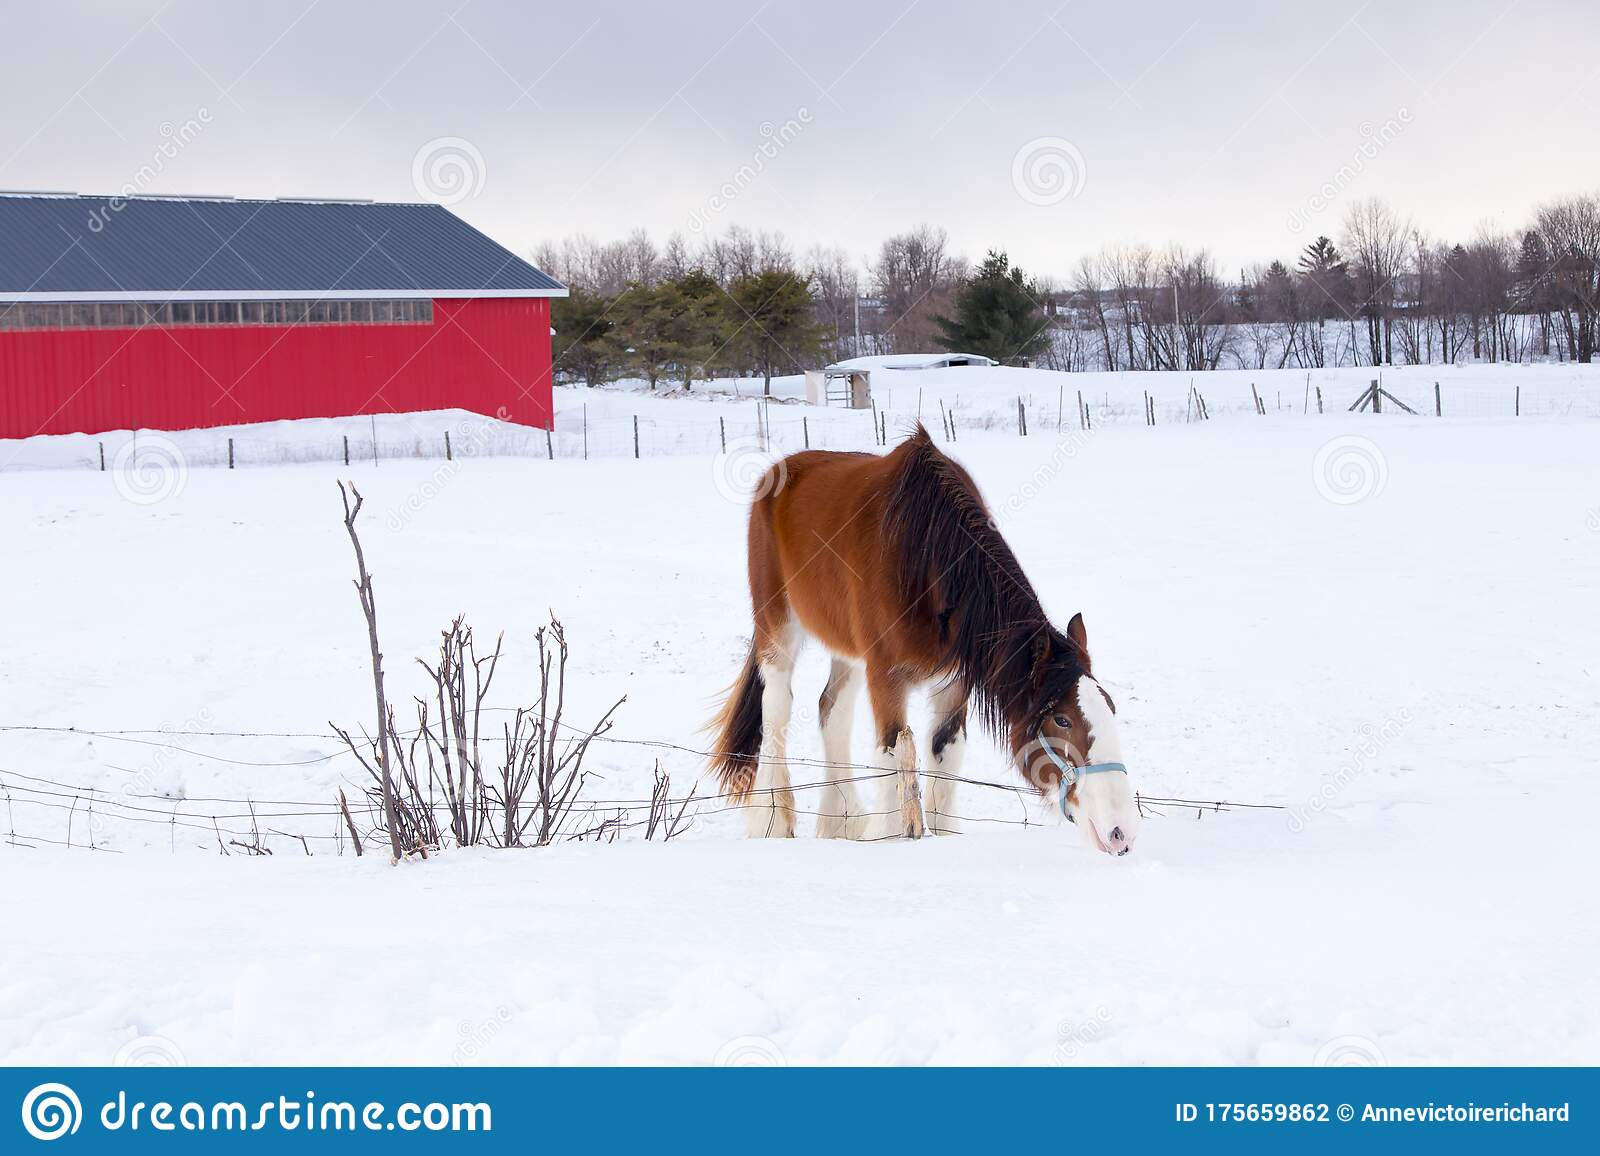 Clydesdale Snow Photos Free Royalty Free Stock Photos From Dreamstime